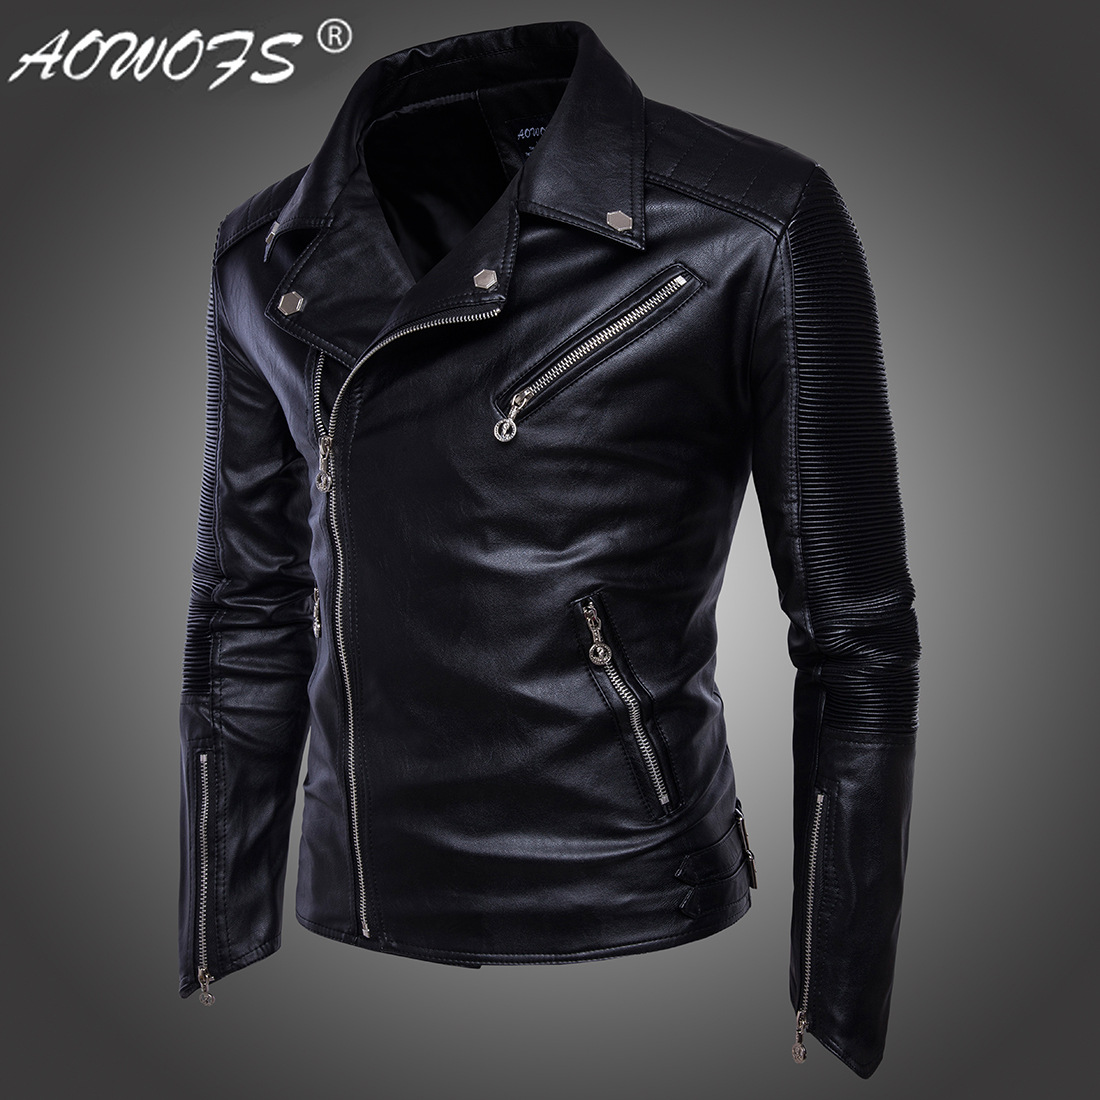 Jacket Men's European Code Hot Sprint Europe 2017 Men's Locomotive Multi-zipped Leather Jacket Motto Jacket Black